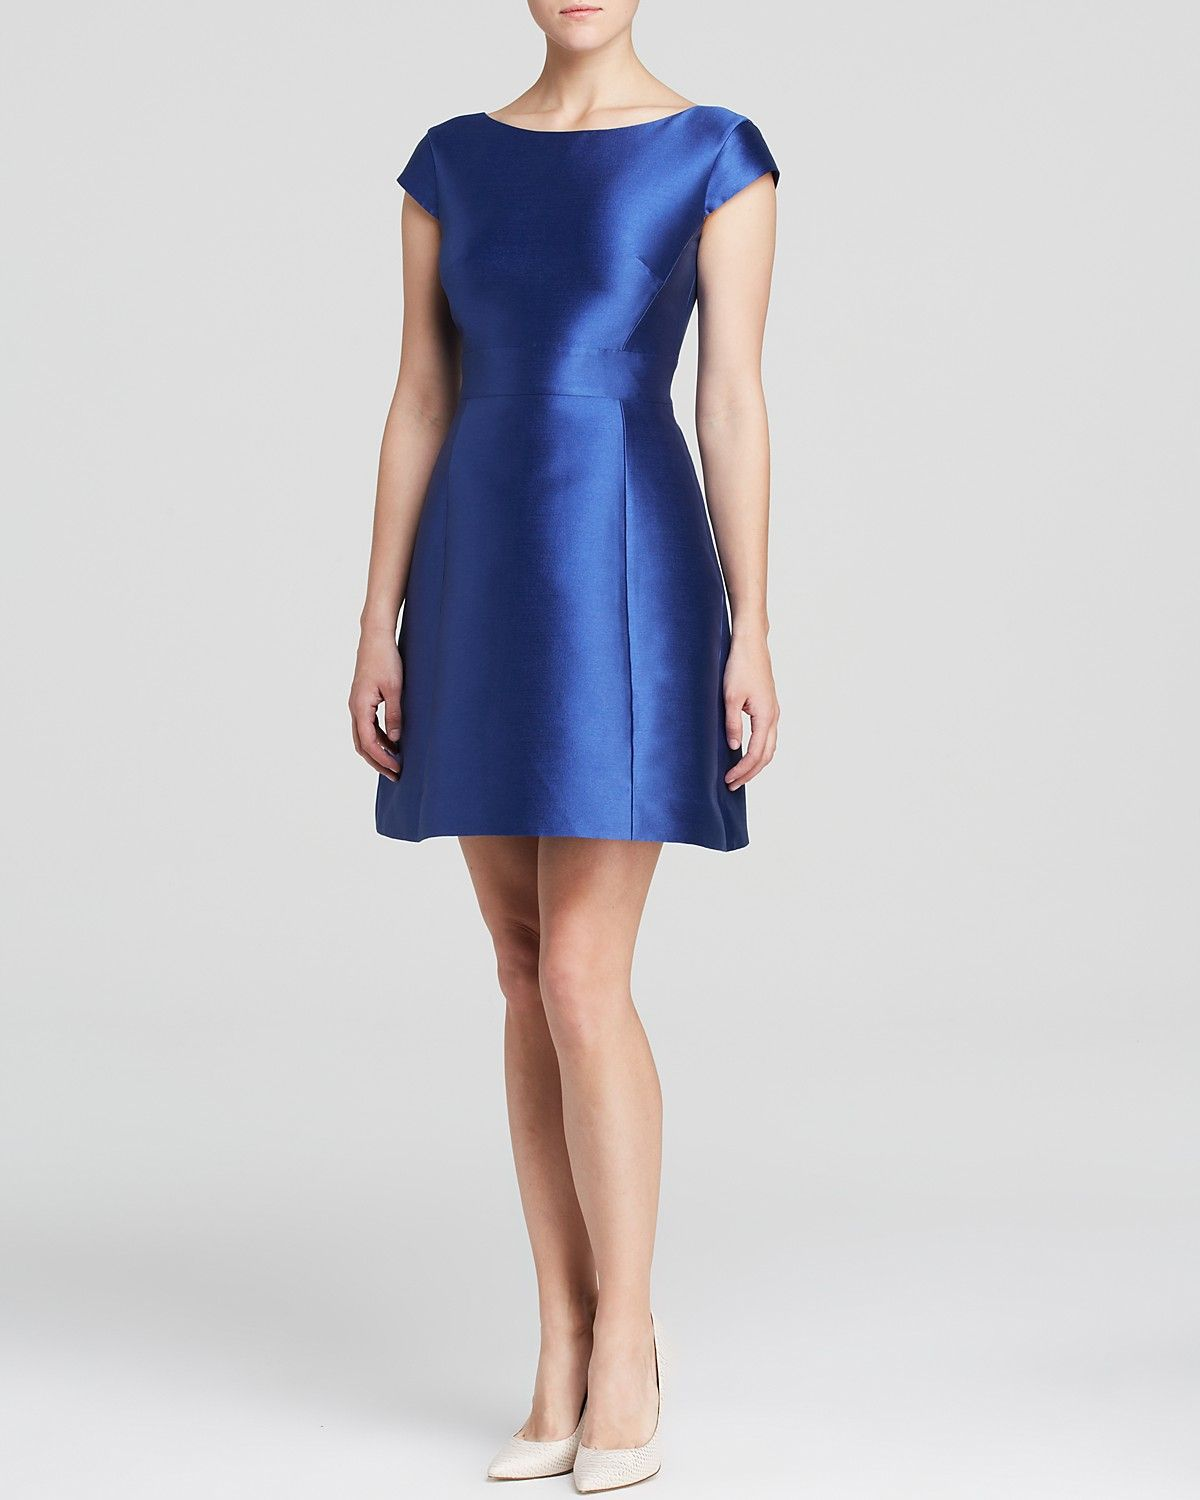 Kate spade new york open back fit and flare dress bloomingdales kate spade new york open back fit and flare dress bloomingdales ombrellifo Gallery